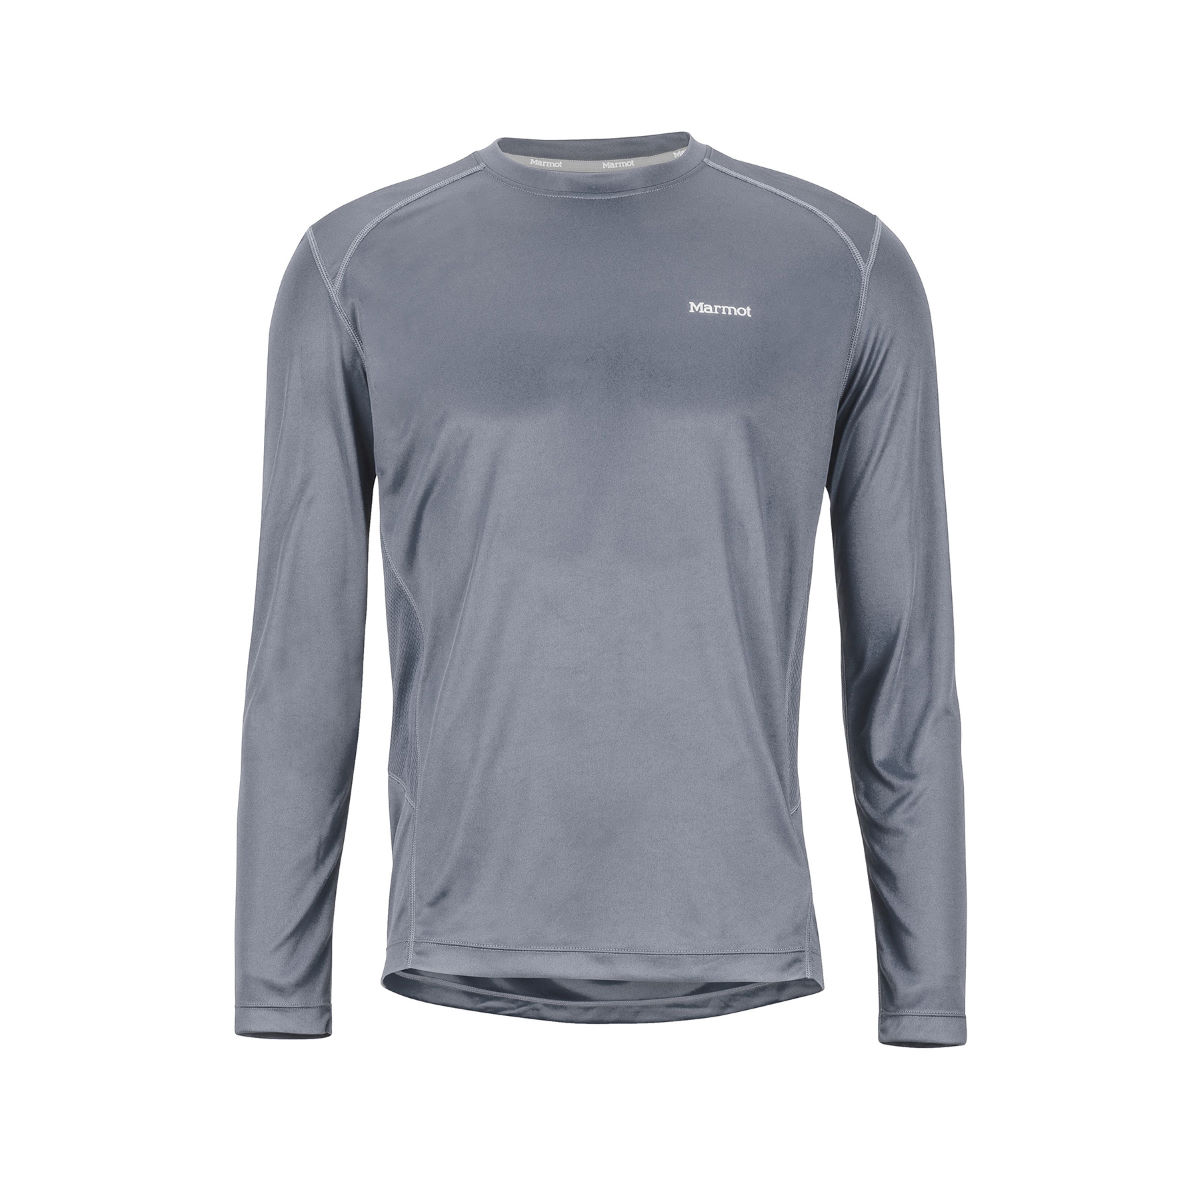 Marmot Marmot Windridge Long Sleeve Top   T-Shirts